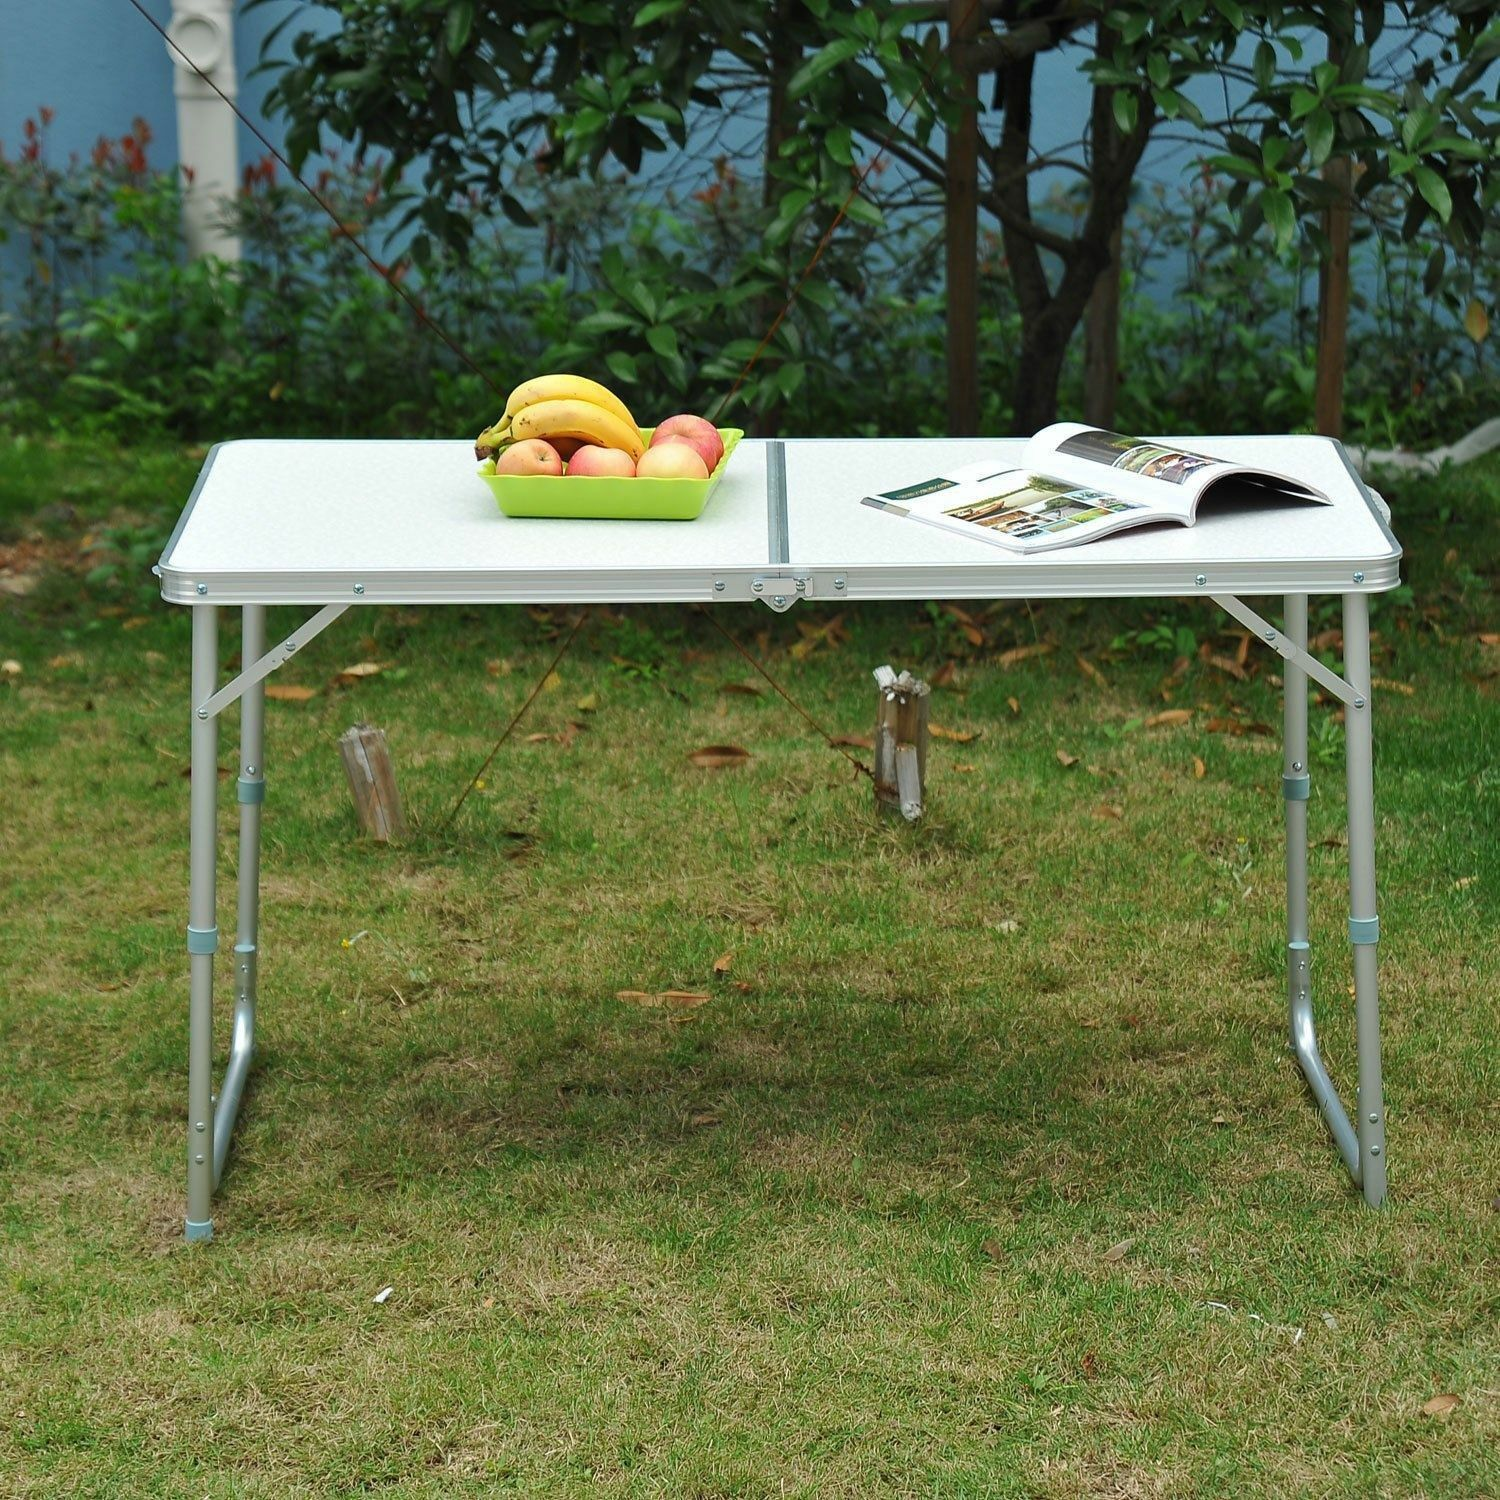 Outdoor Patio Roll up Portable Folding Camping Square  Picnic Table Aluminum Leg  a lot of surprises